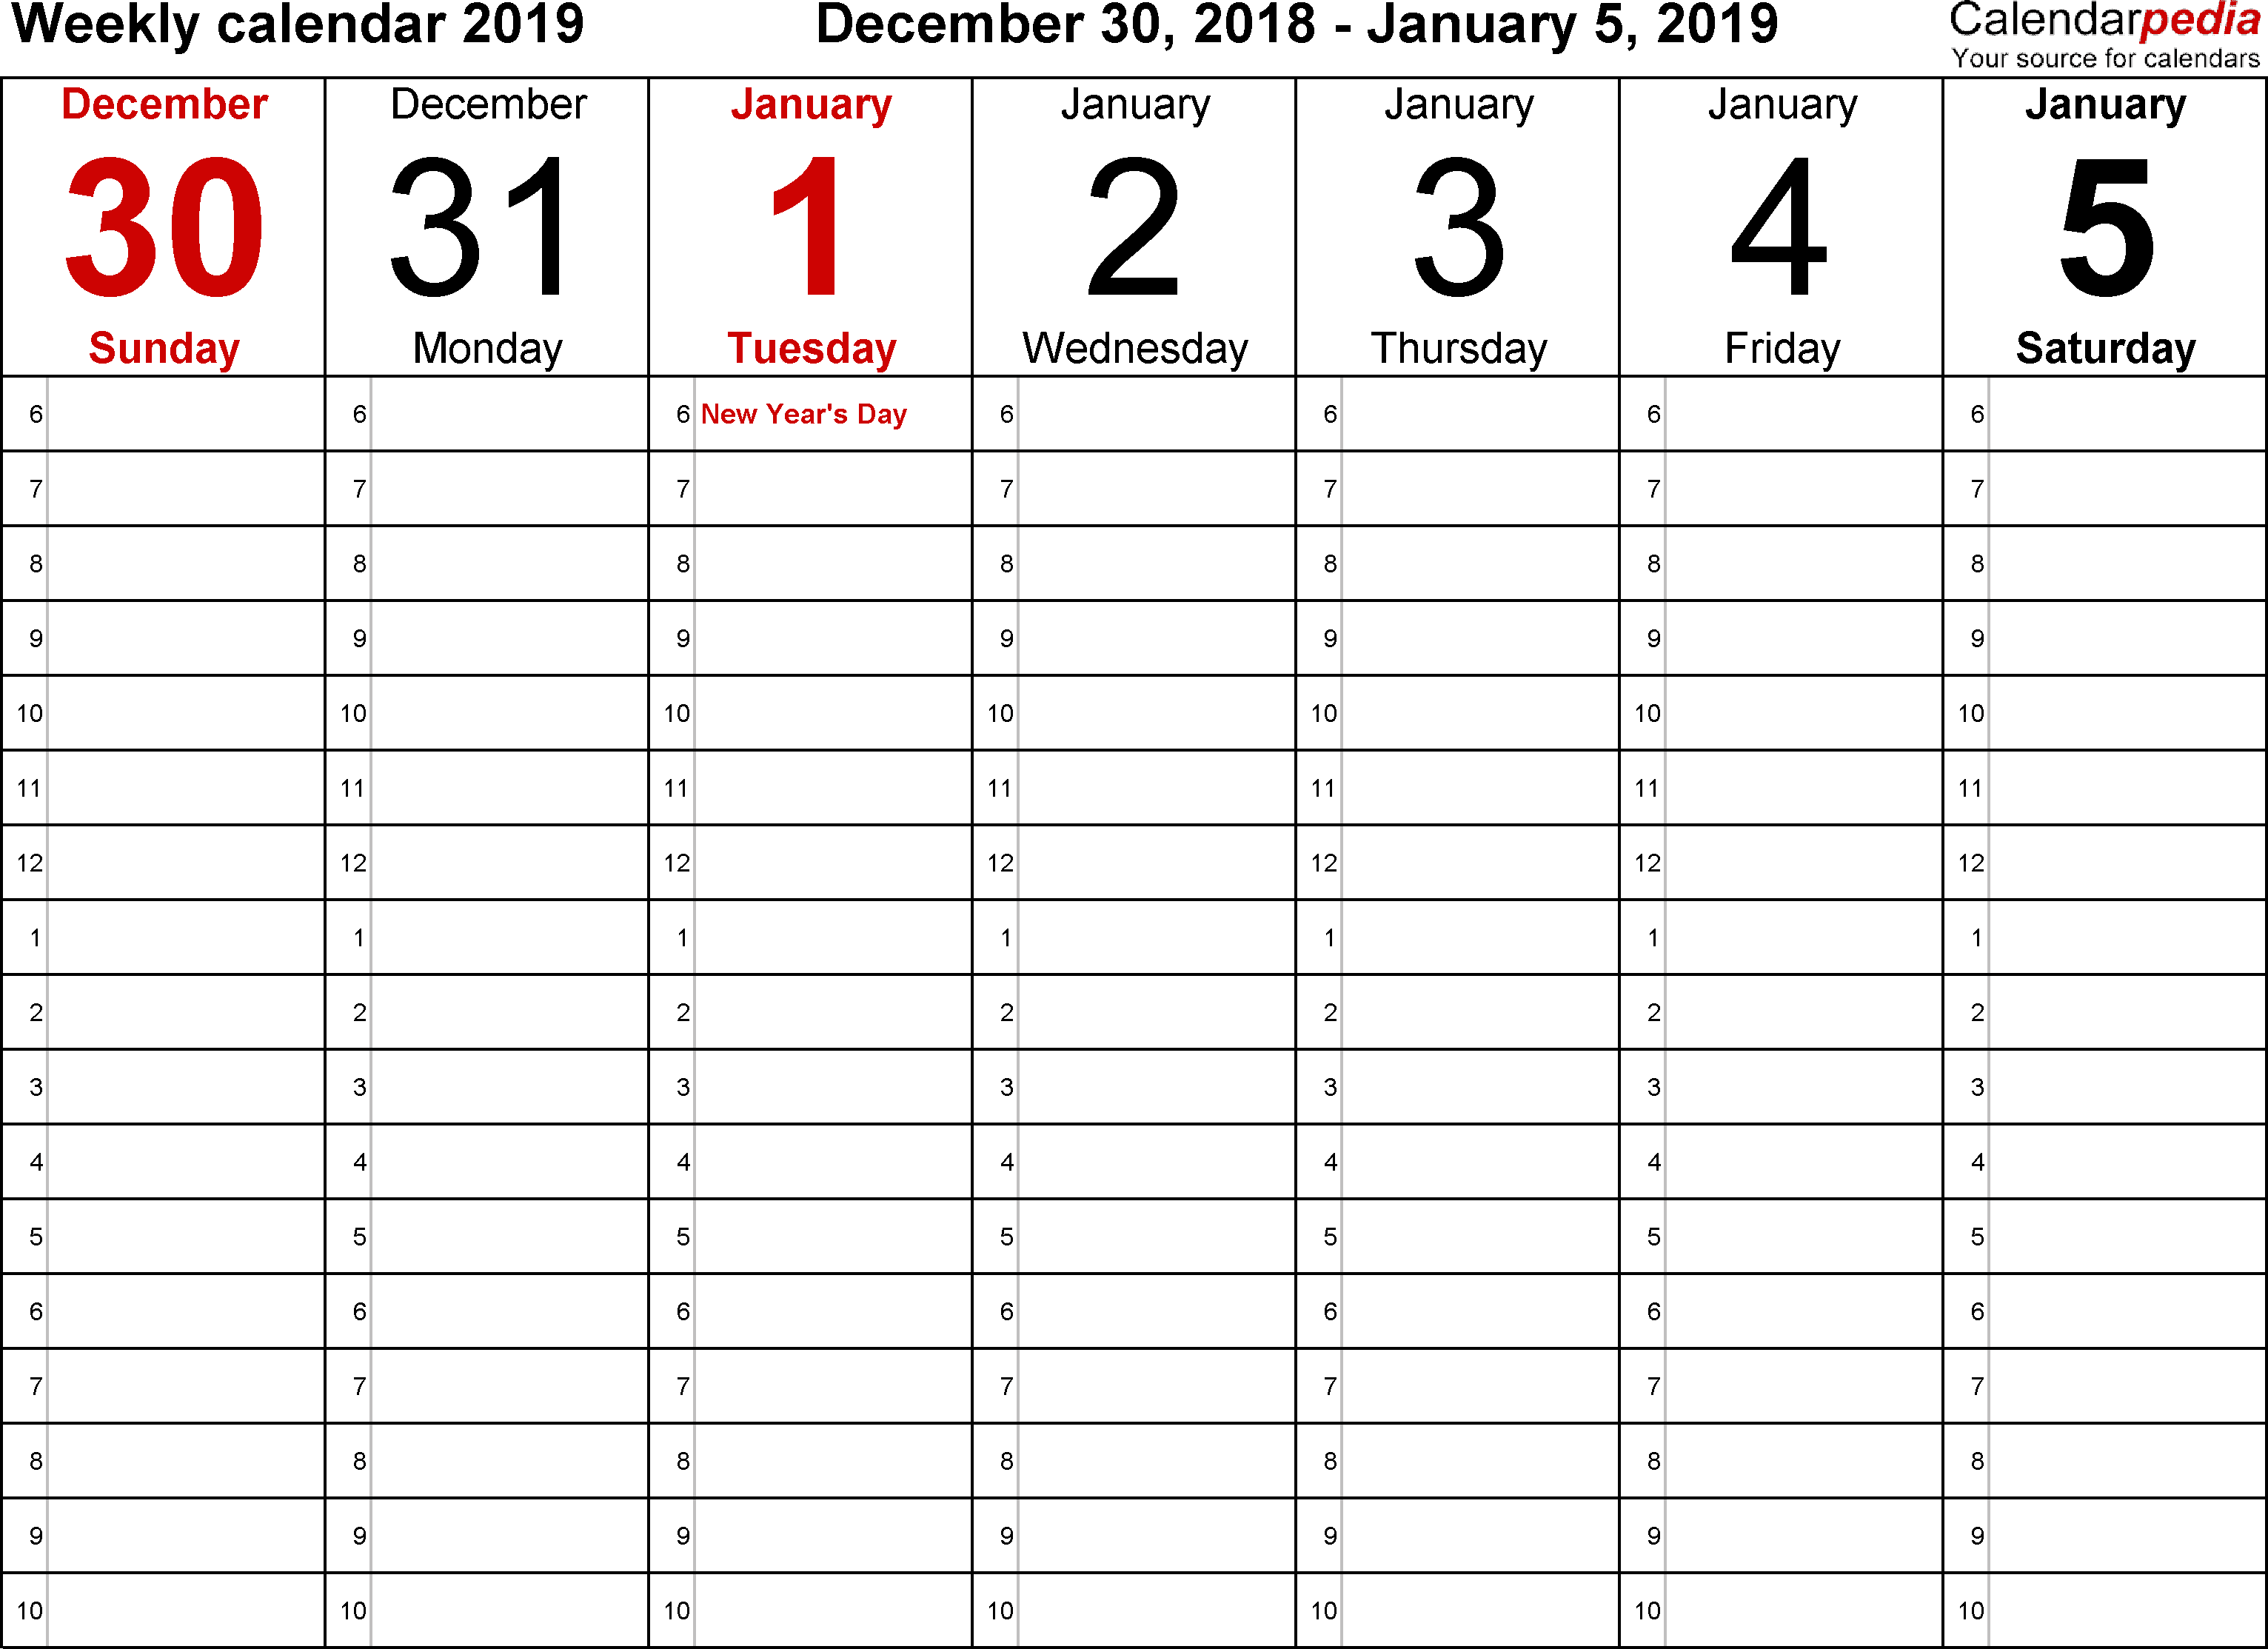 graphic regarding Weekly Schedule Template Printable identify Weekly calendar 2019 for Term - 12 absolutely free printable templates